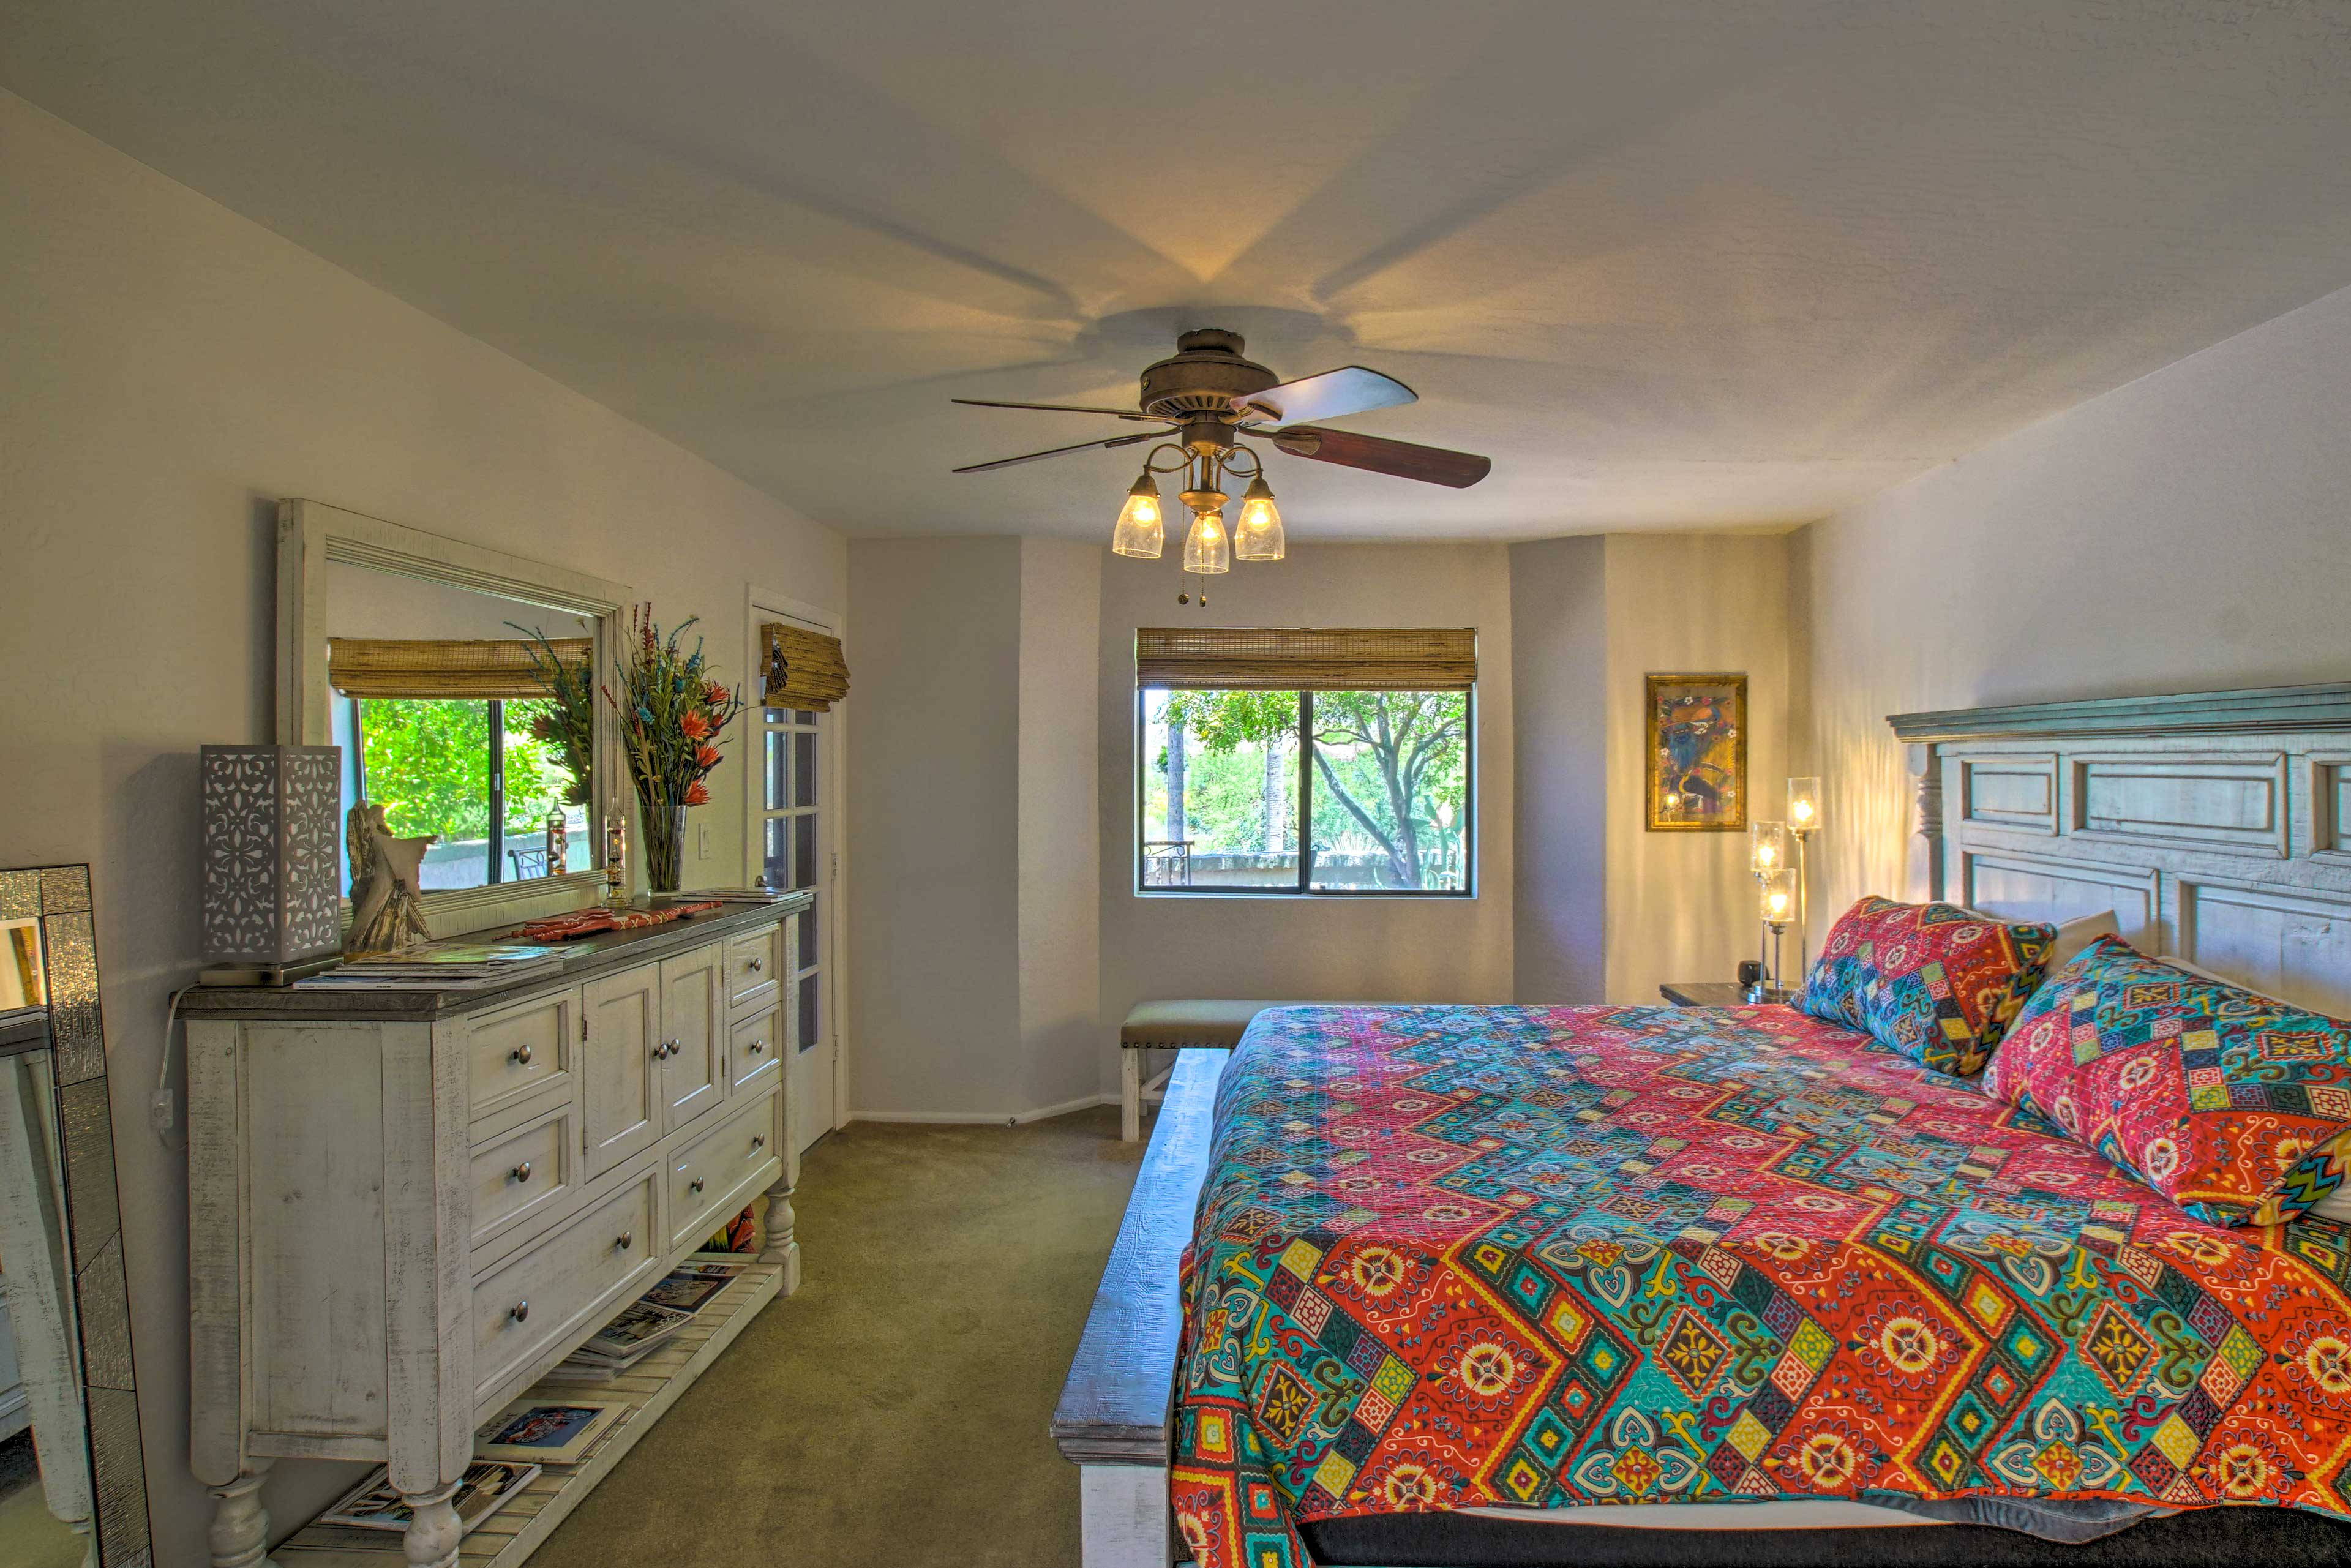 The second full bedroom also features a California King bed!